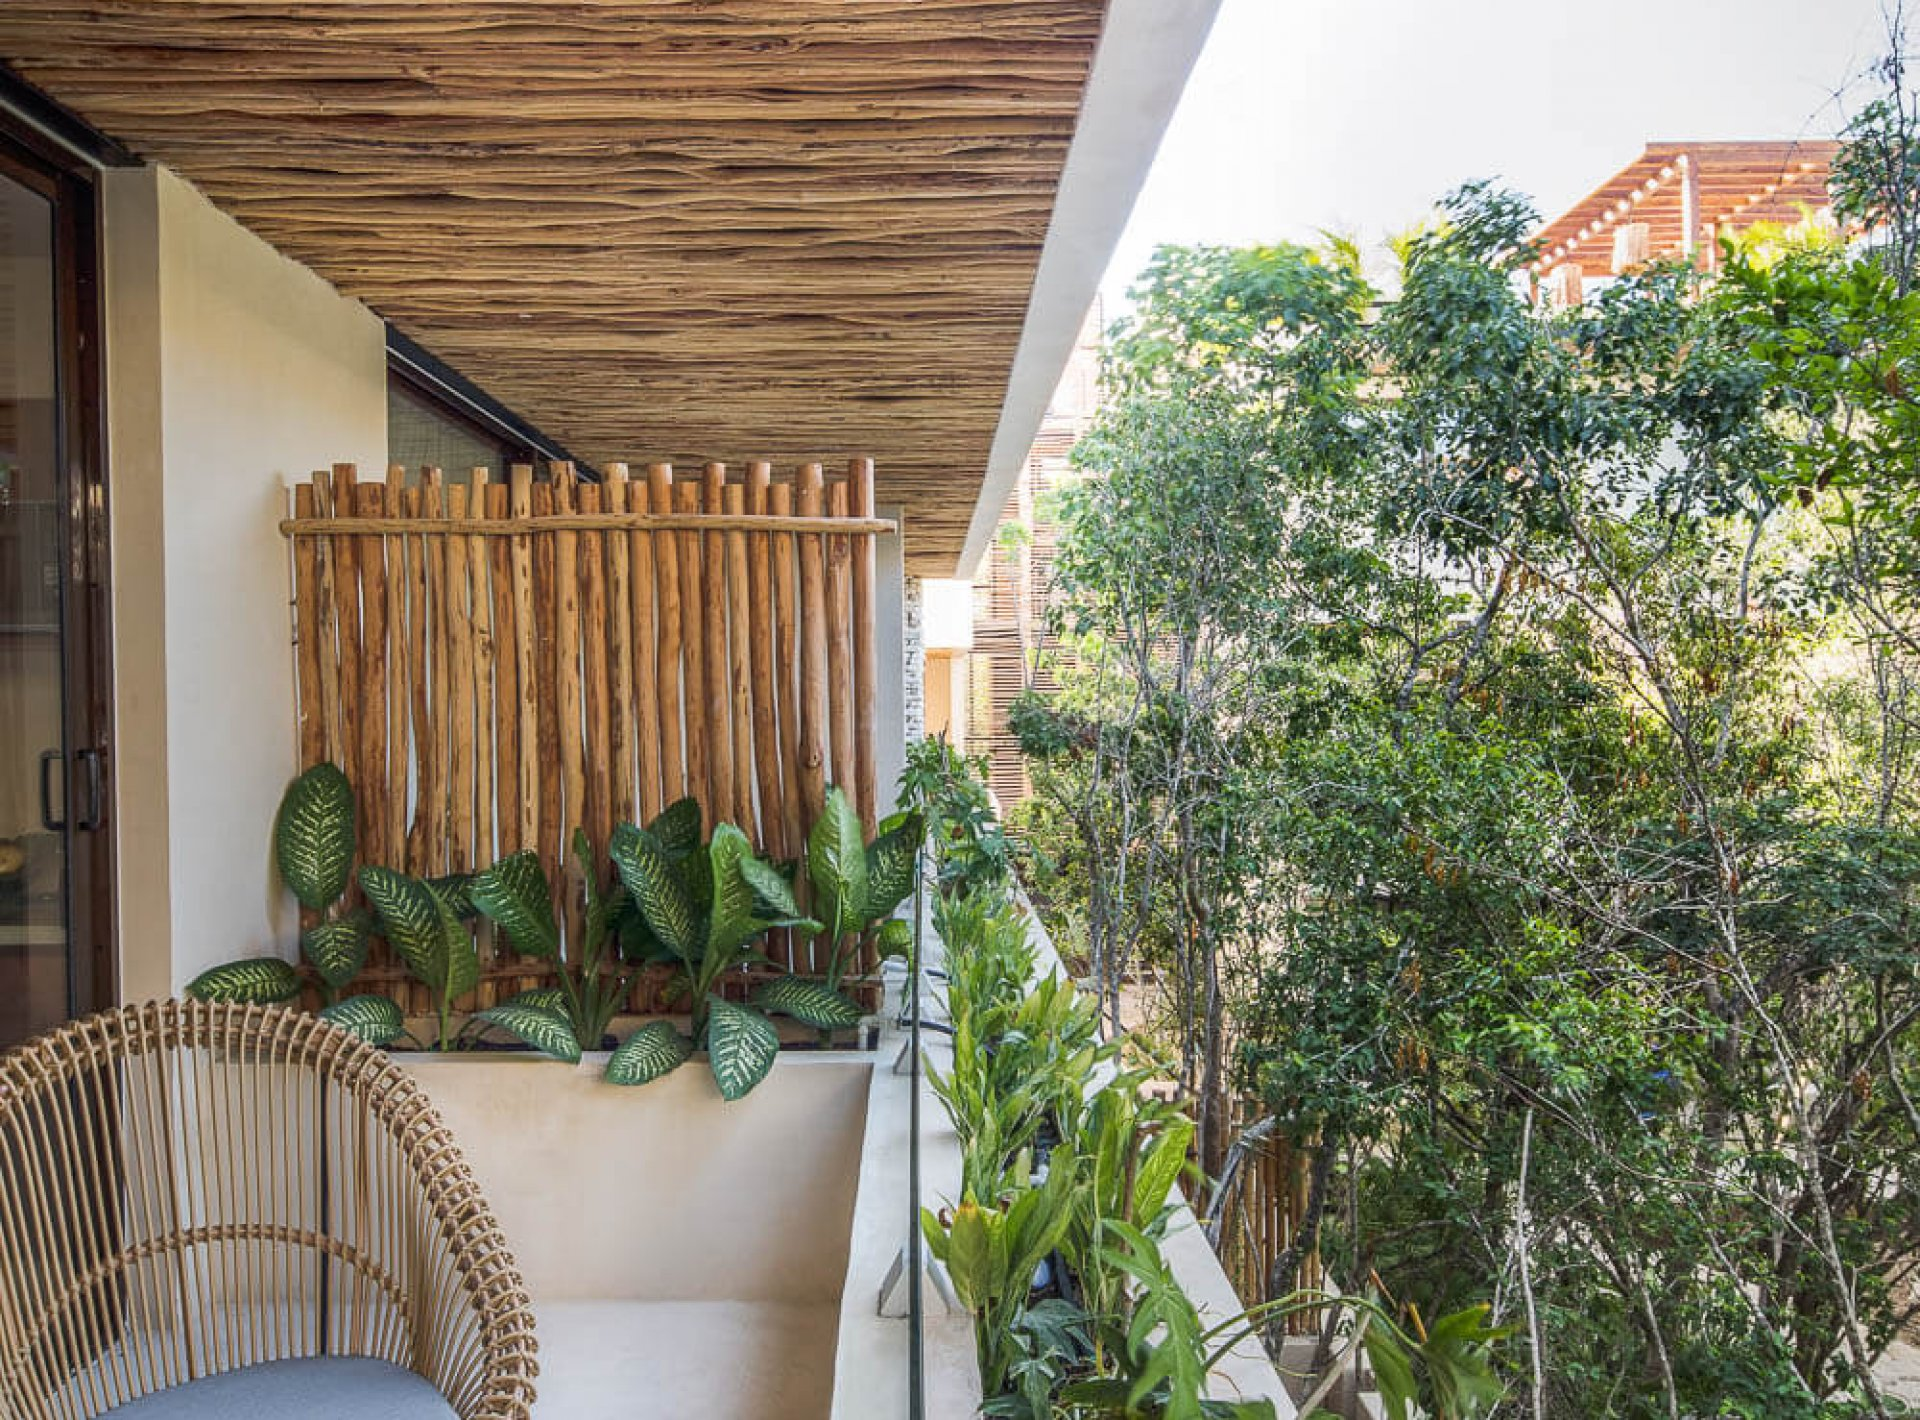 Apartments Tulum Studio Jungle Terrace 12